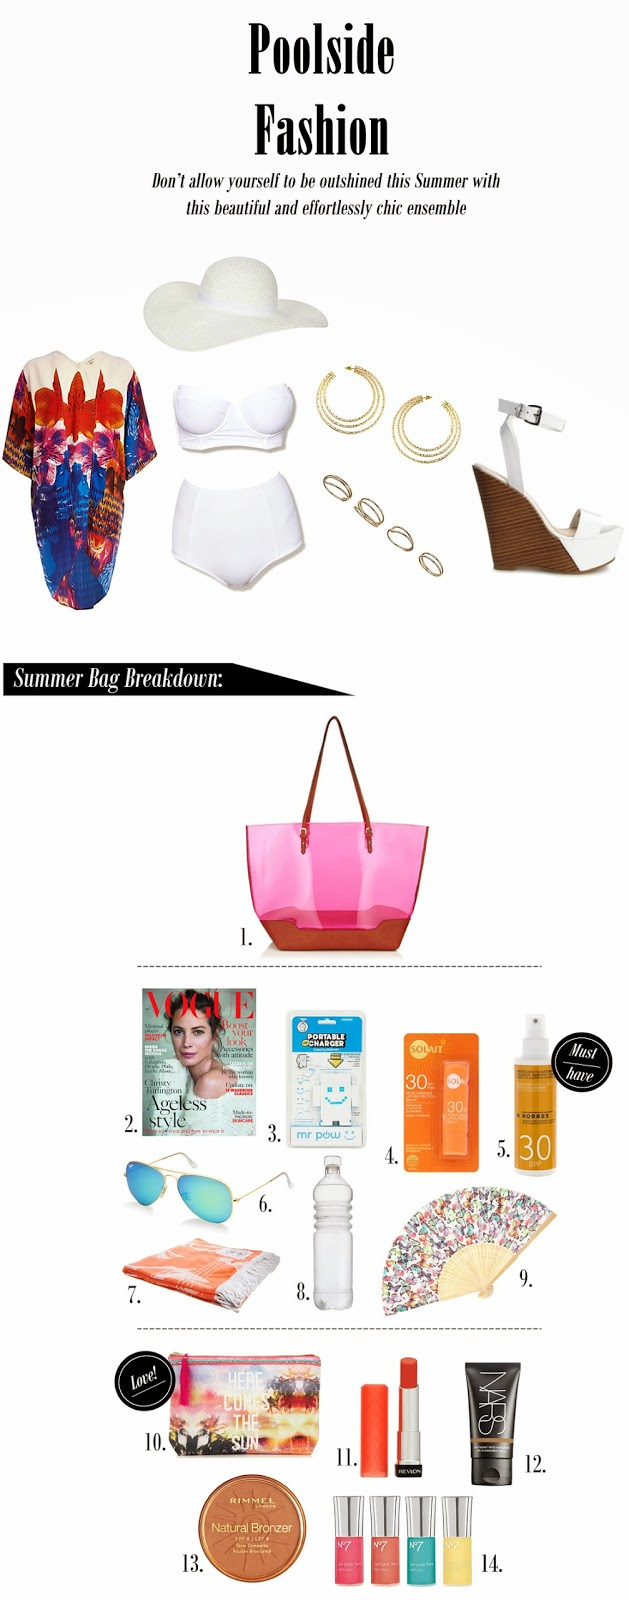 poolside fashion, beach fashion, beach chic, poolside chic, fashion, summer fashion, anasofiachic, summer makeup, beach bag, poolside bag, beach bag essentials, poolside bag essentials, summer basics, summer bag basics, beauty basics